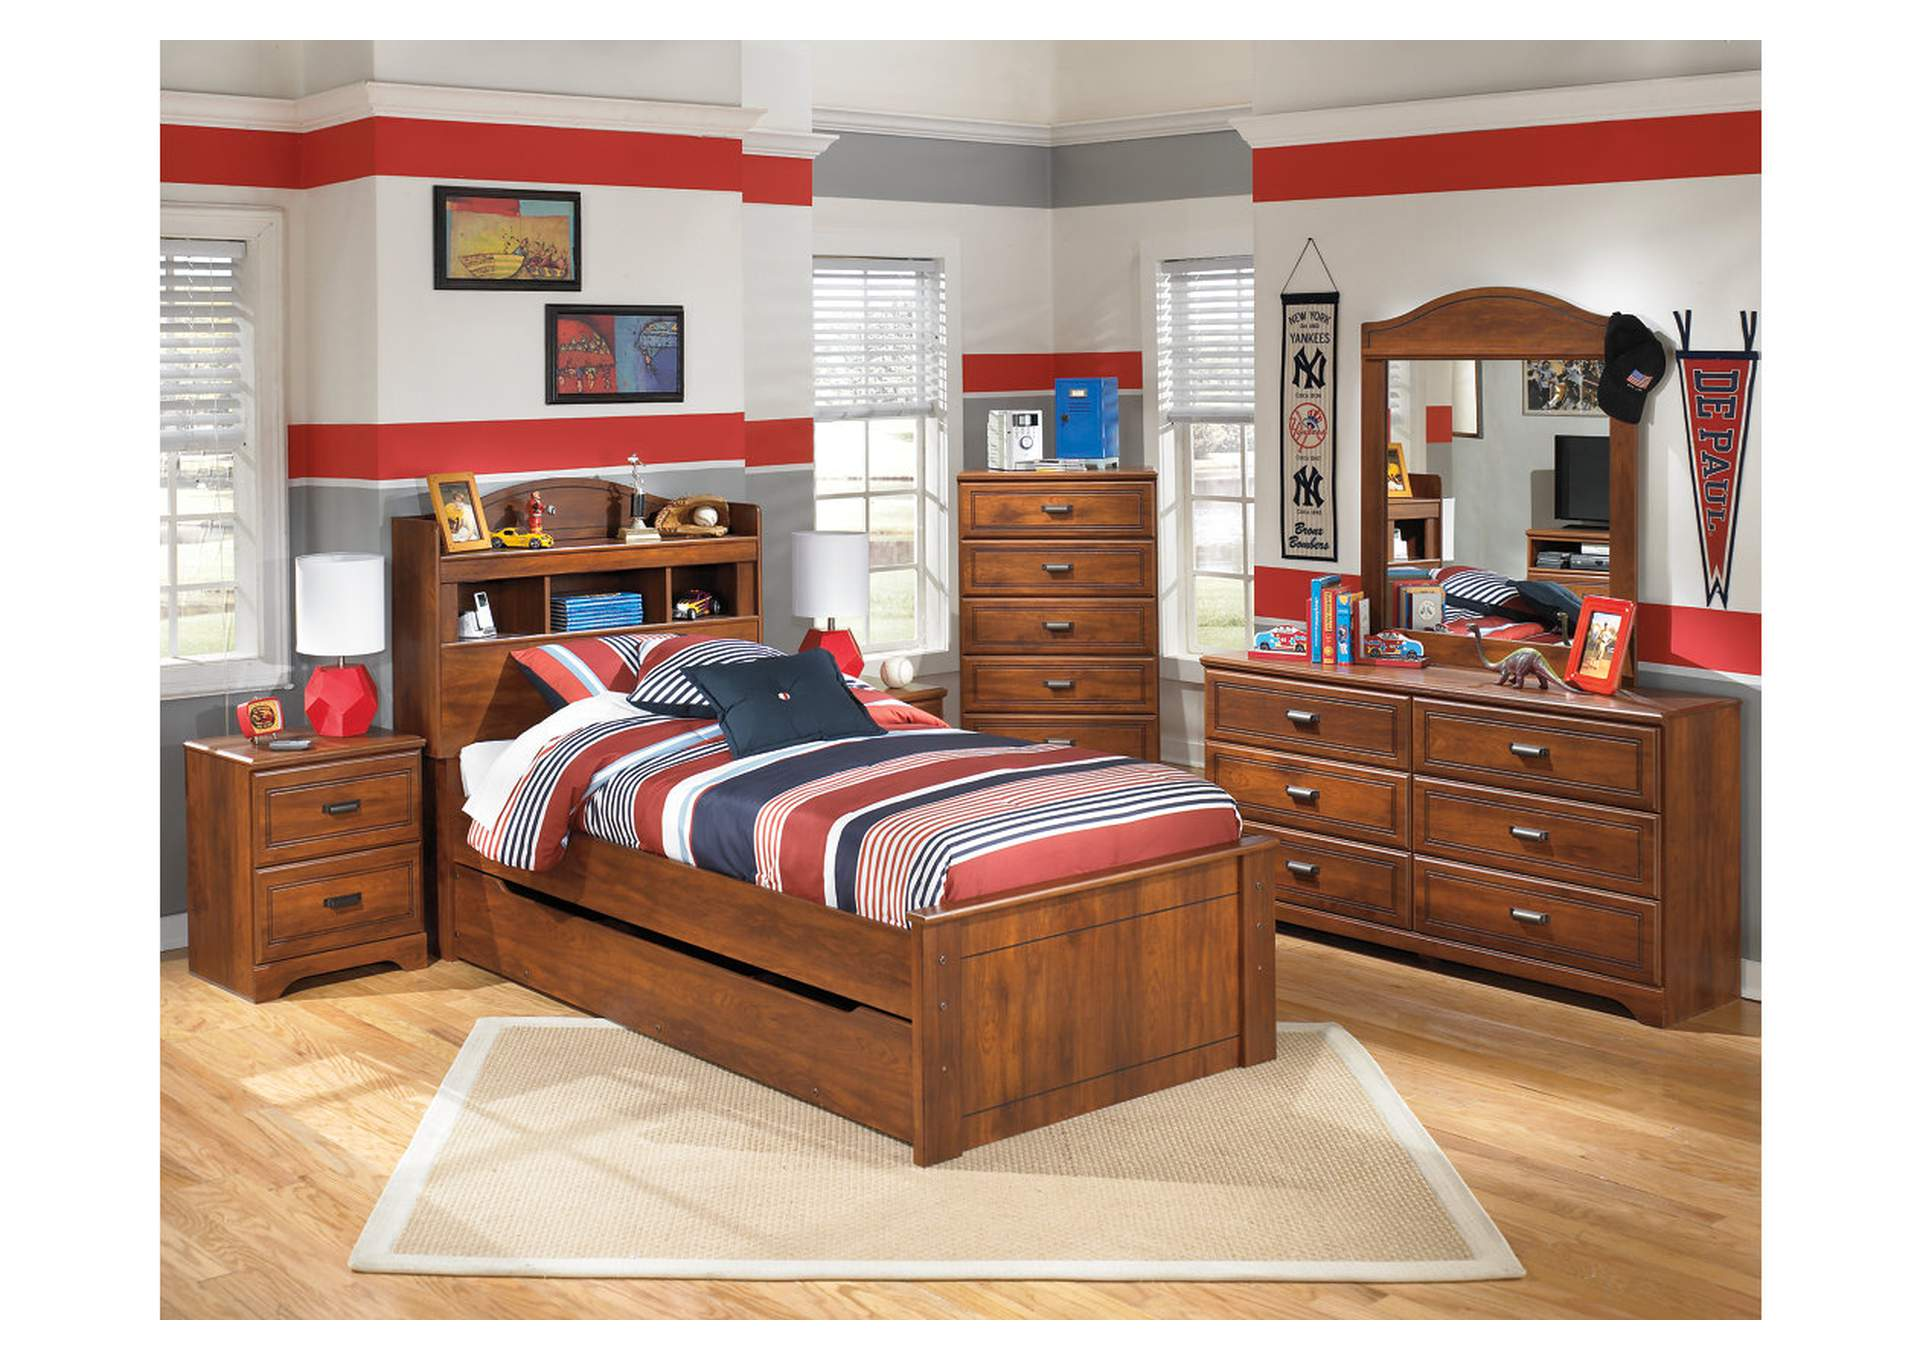 Barchan Twin Bookcase Trundle Bed w/Dresser & Mirror,Signature Design By Ashley